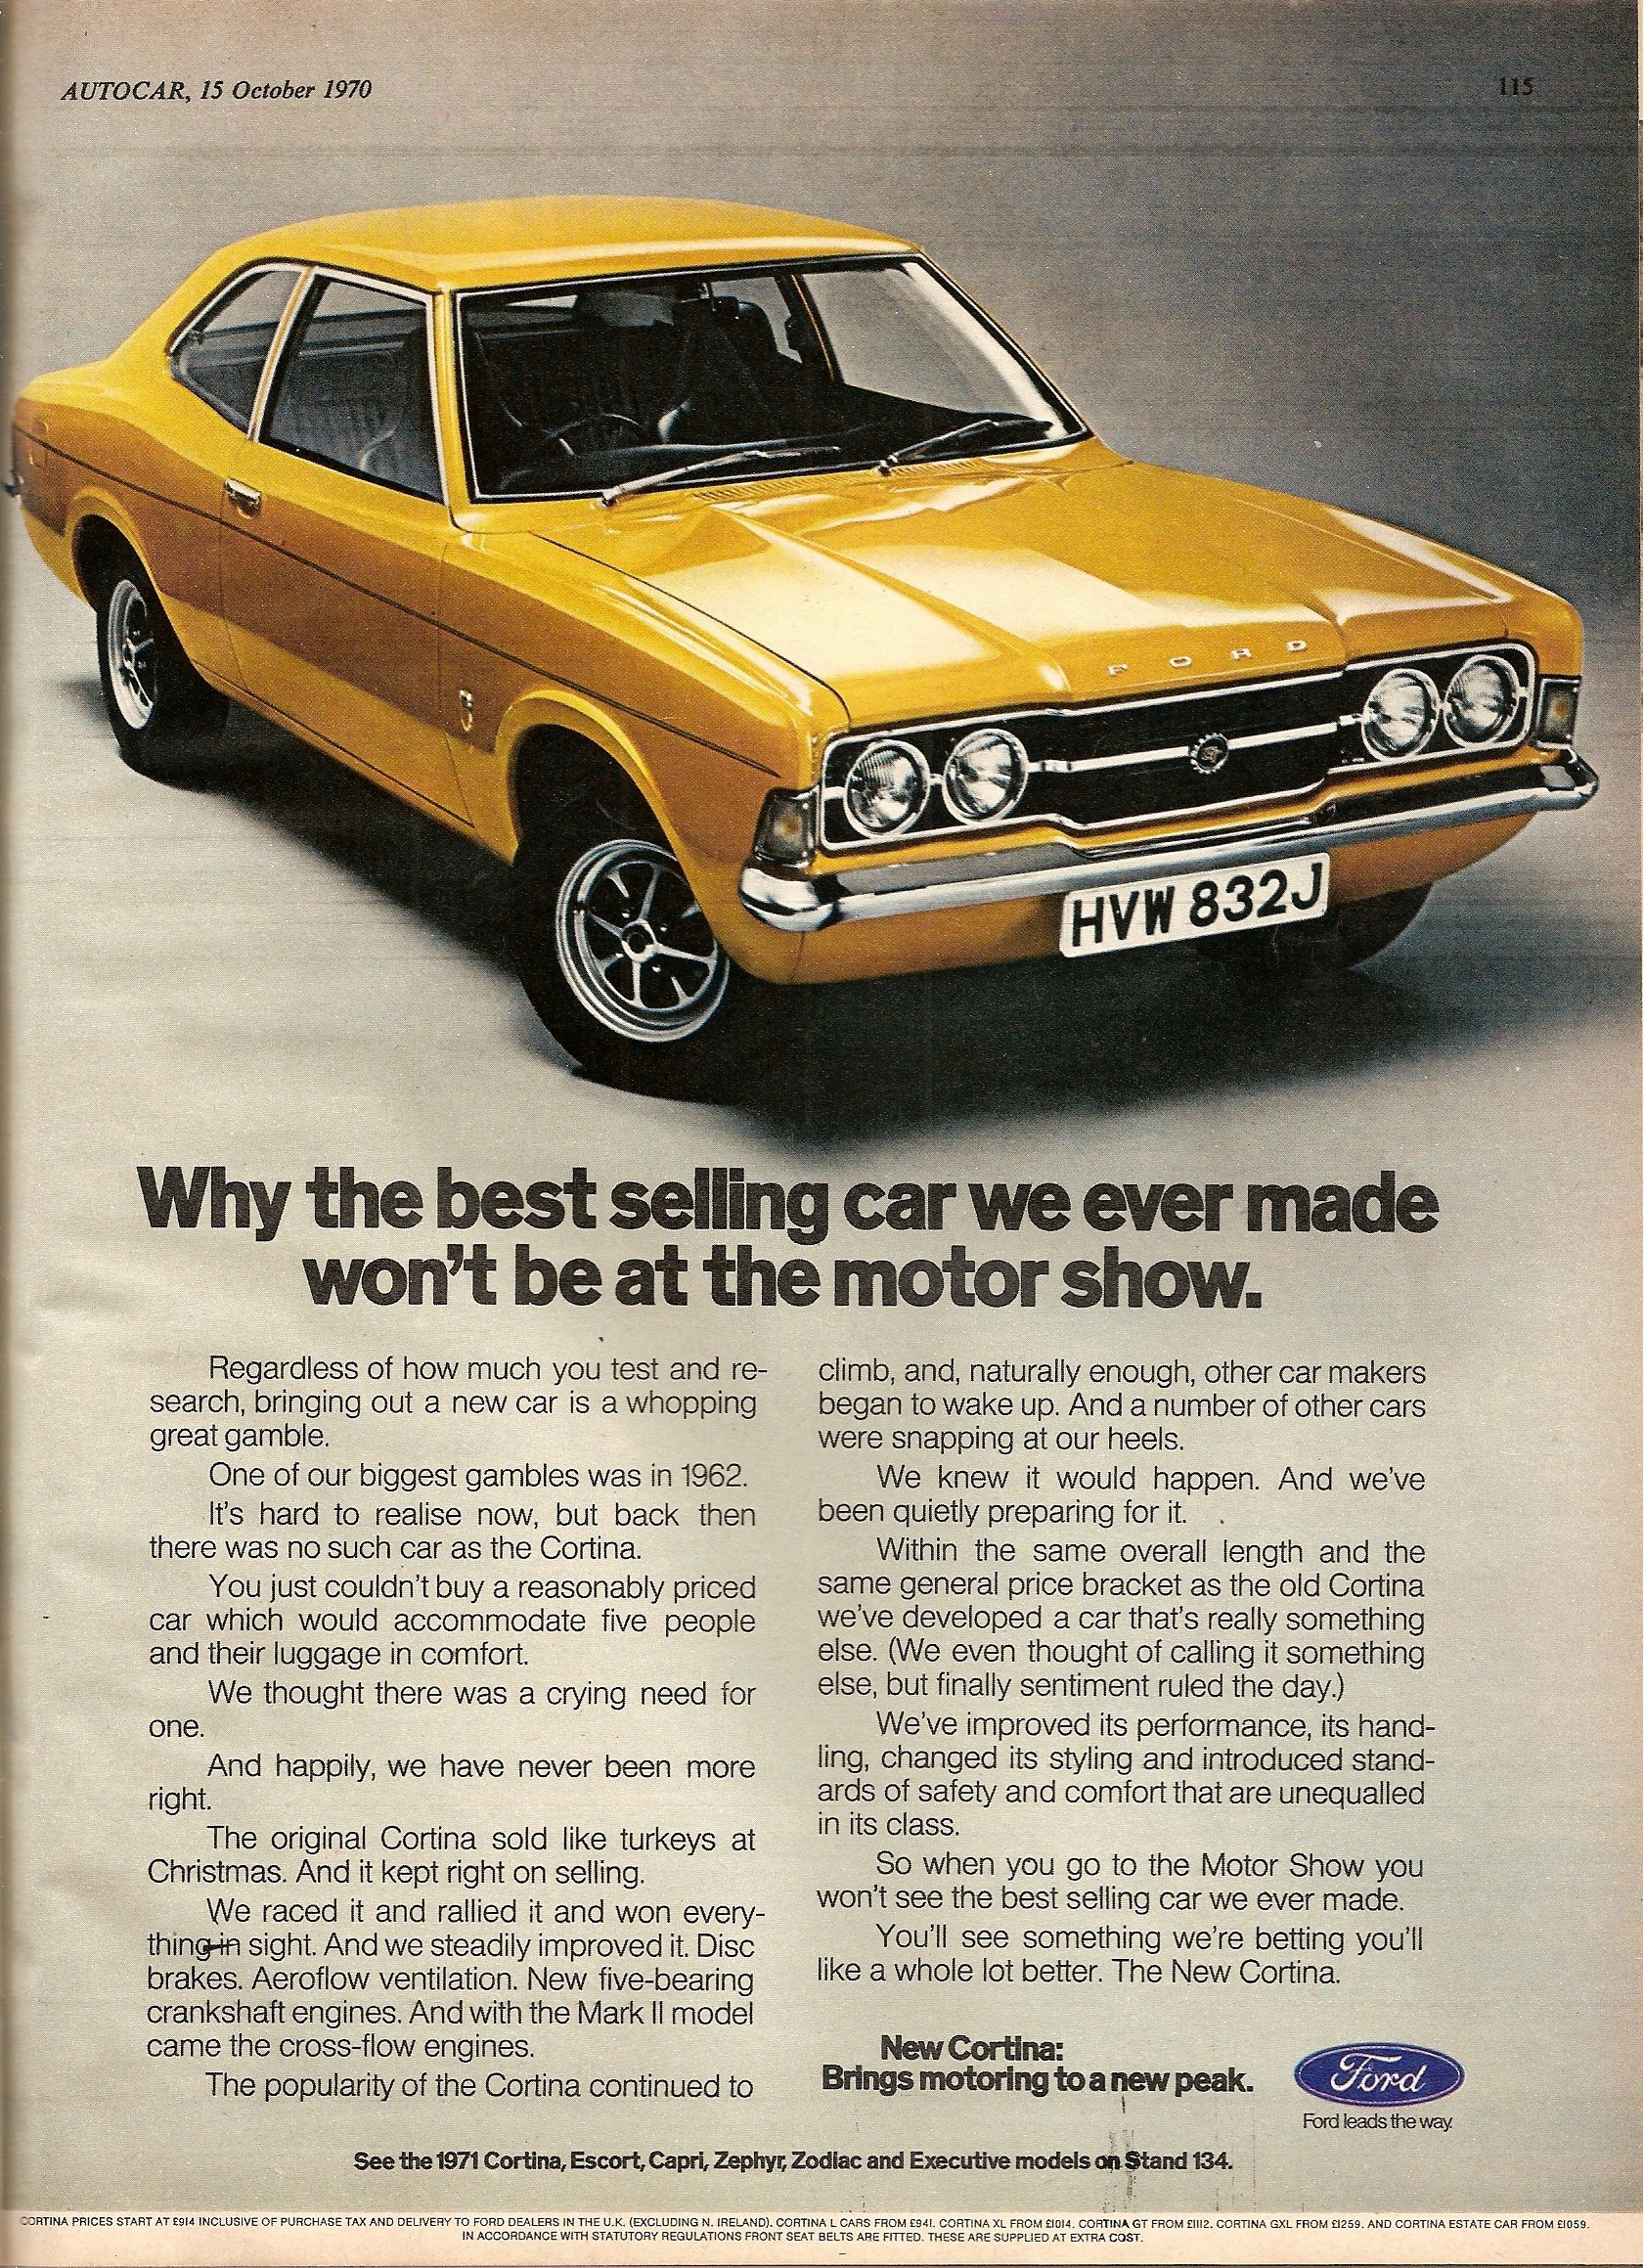 Ford Cortina Mk 3 advert from 1971.